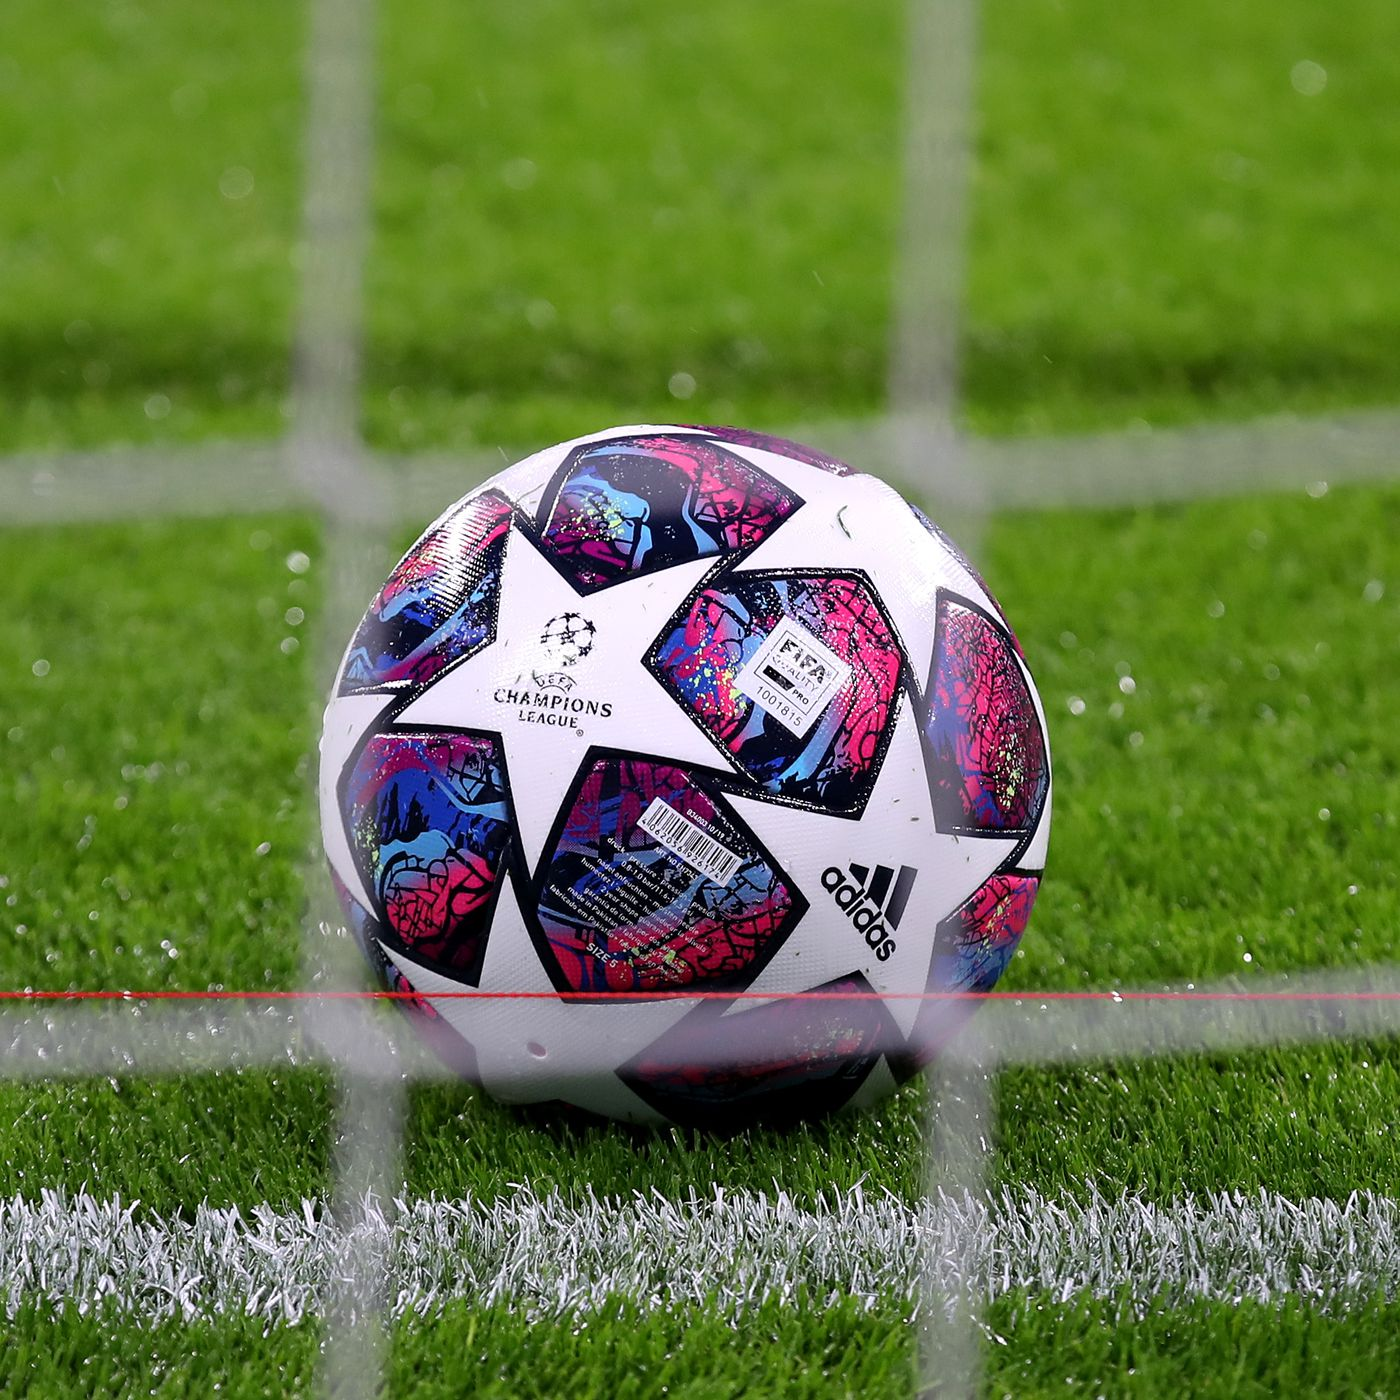 Rb Leipzig Vs Psg Live Stream Lineups Kickoff Time Tv Listings How To Watch Champions League Online Barca Blaugranes